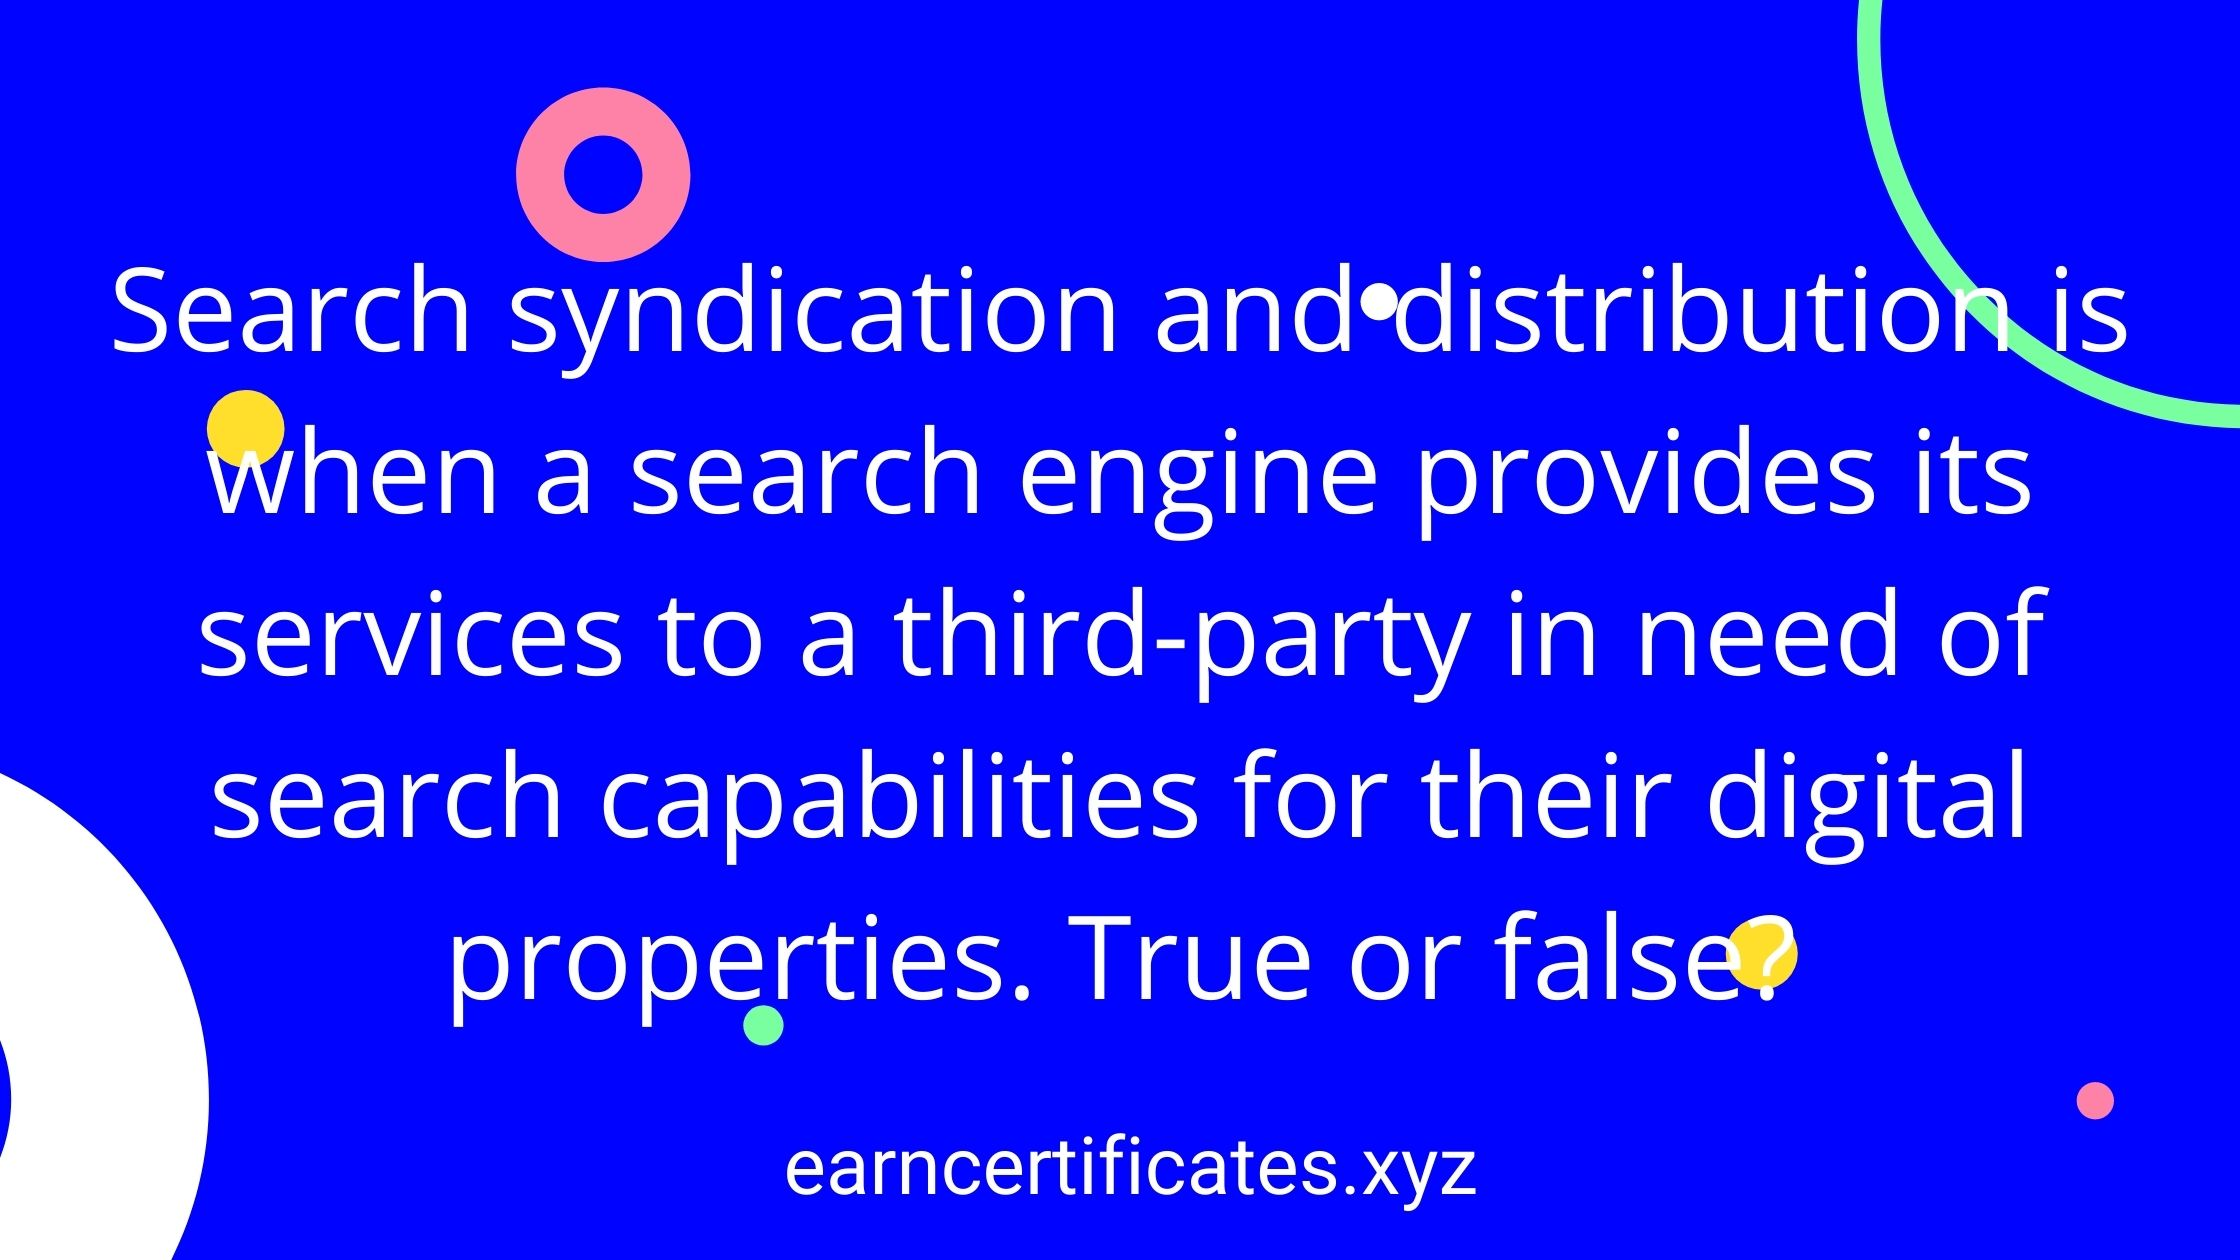 Search syndication and distribution is when a search engine provides its services to a third-party in need of search capabilities for their digital properties. True or false?